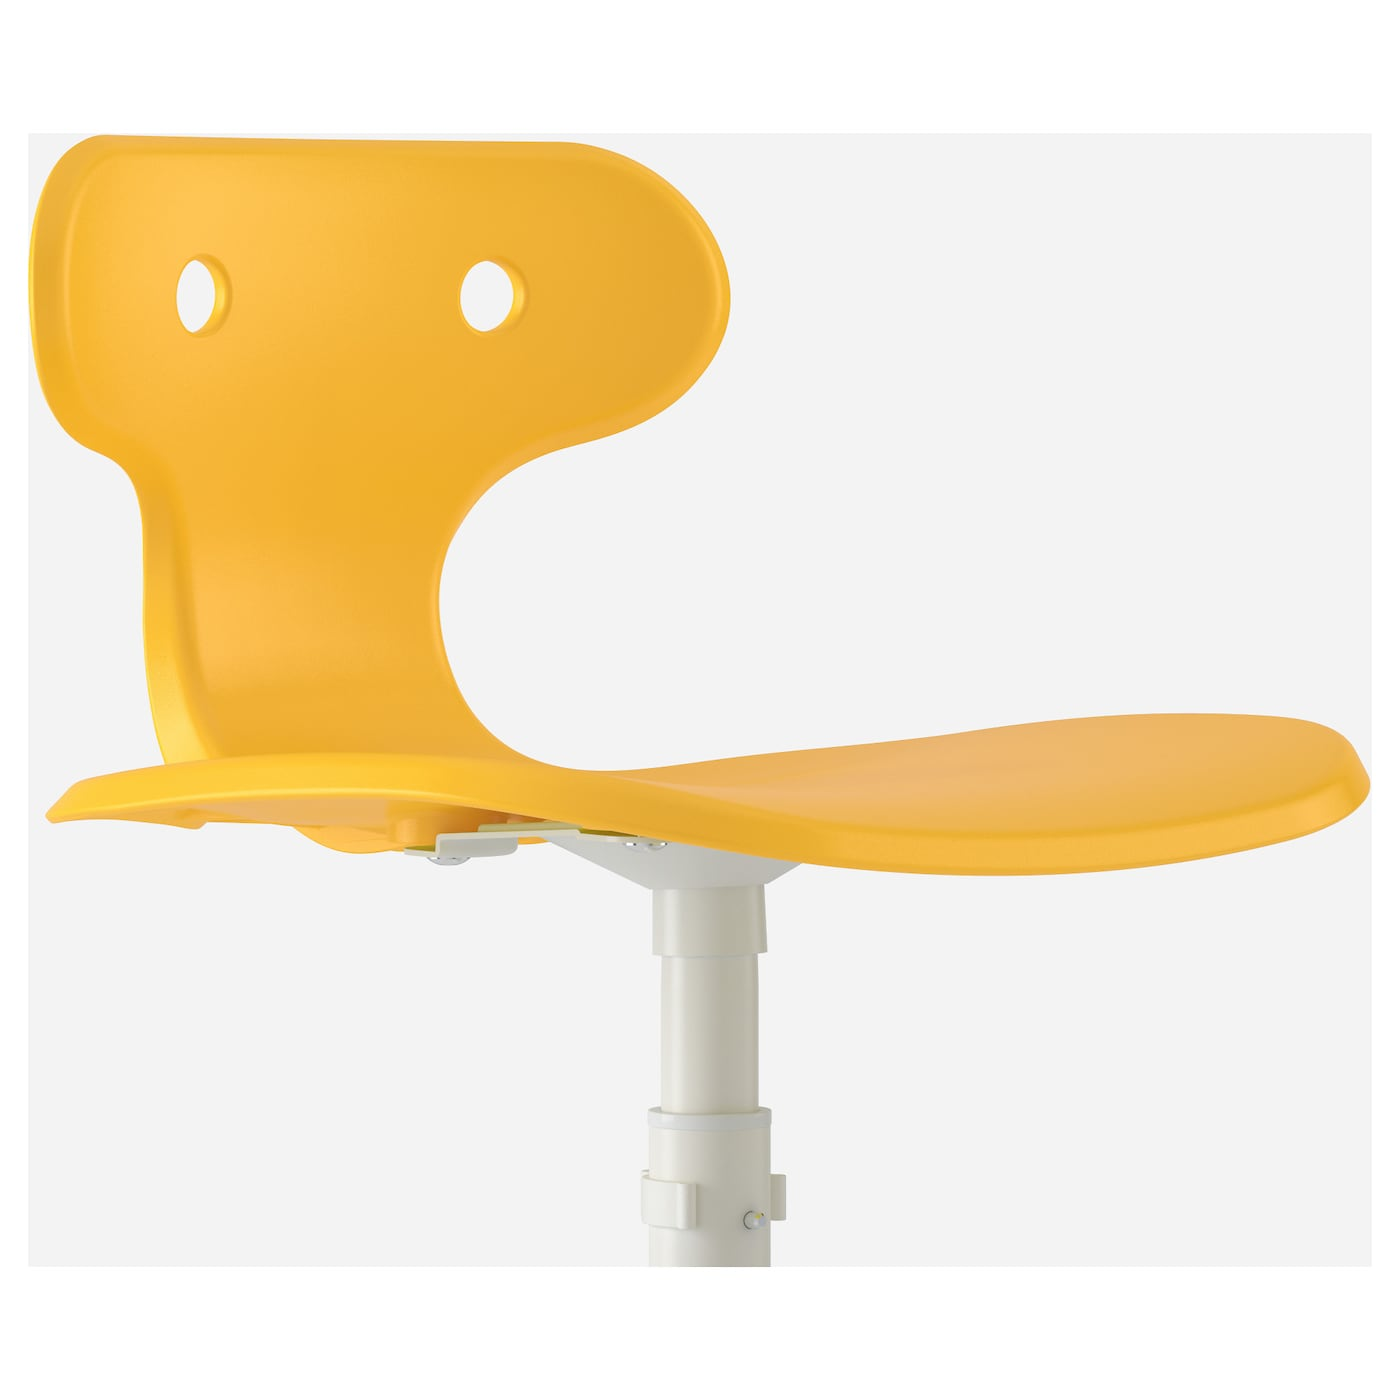 IKEA MOLTE desk chair Your back gets support and extra relief from the built-in lumbar support.